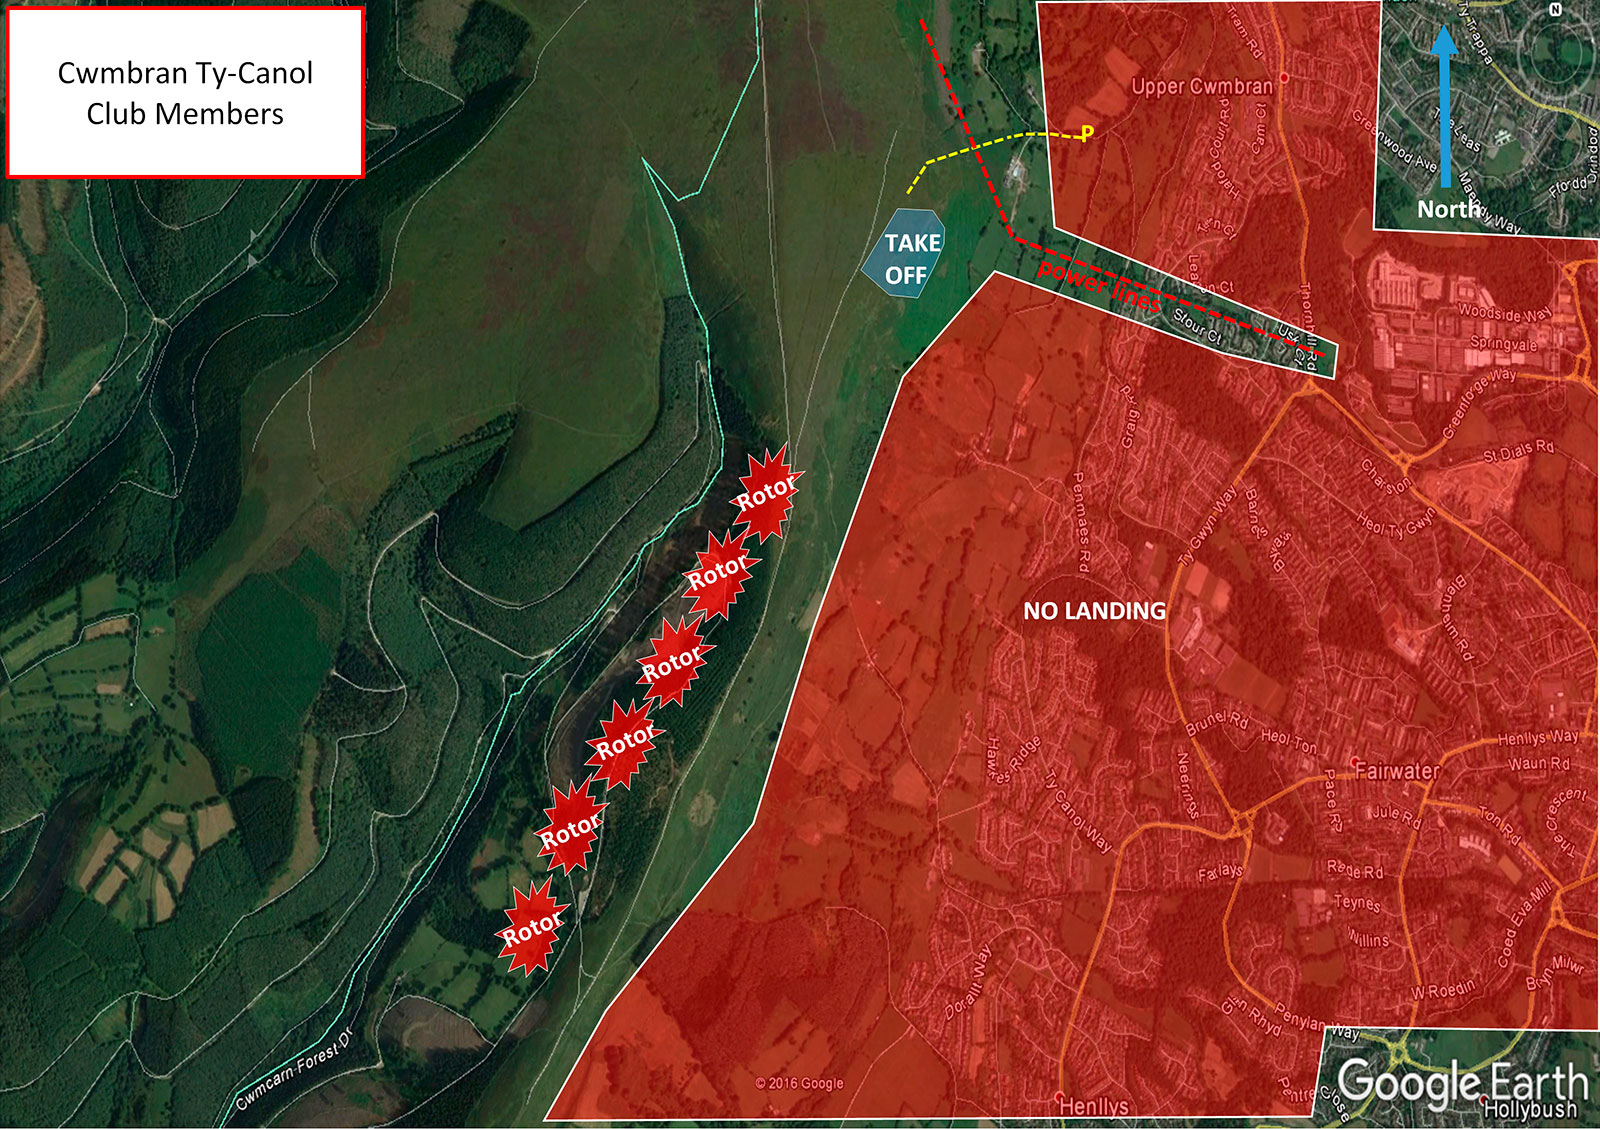 cwmbran-ty-canol-site-image-map